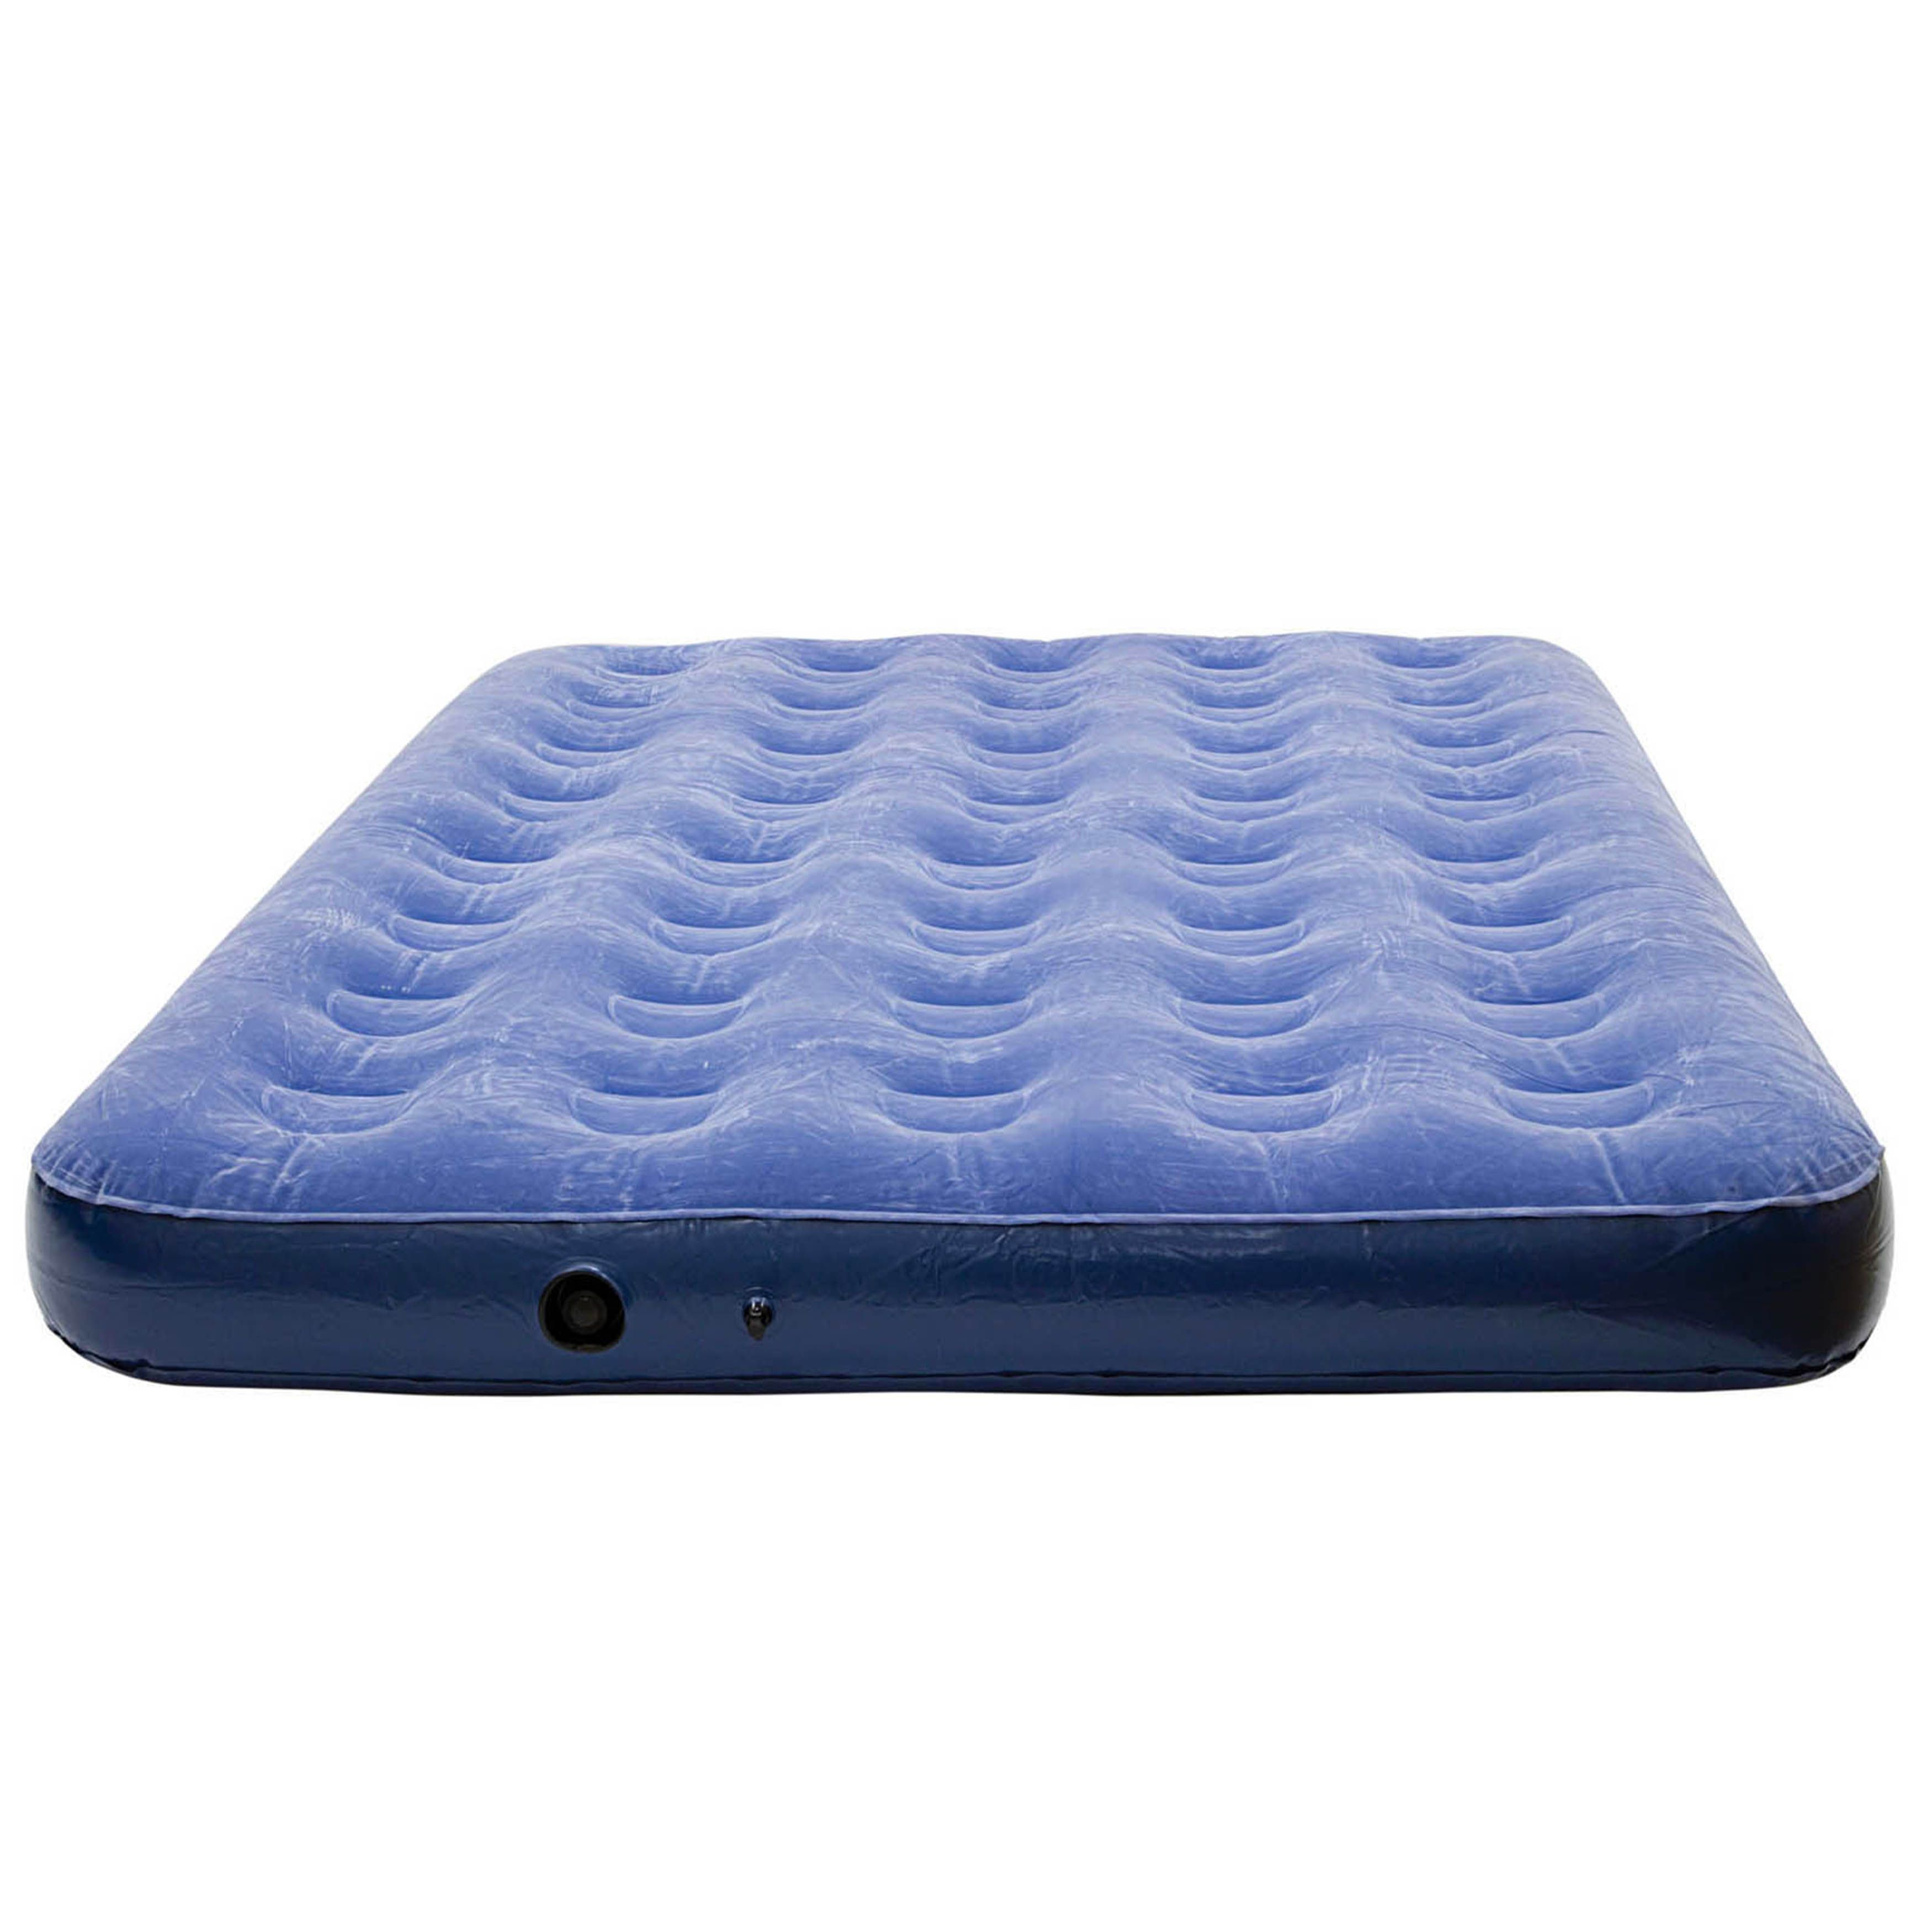 Sports & Outdoors Pure products, Air mattress, Mattress